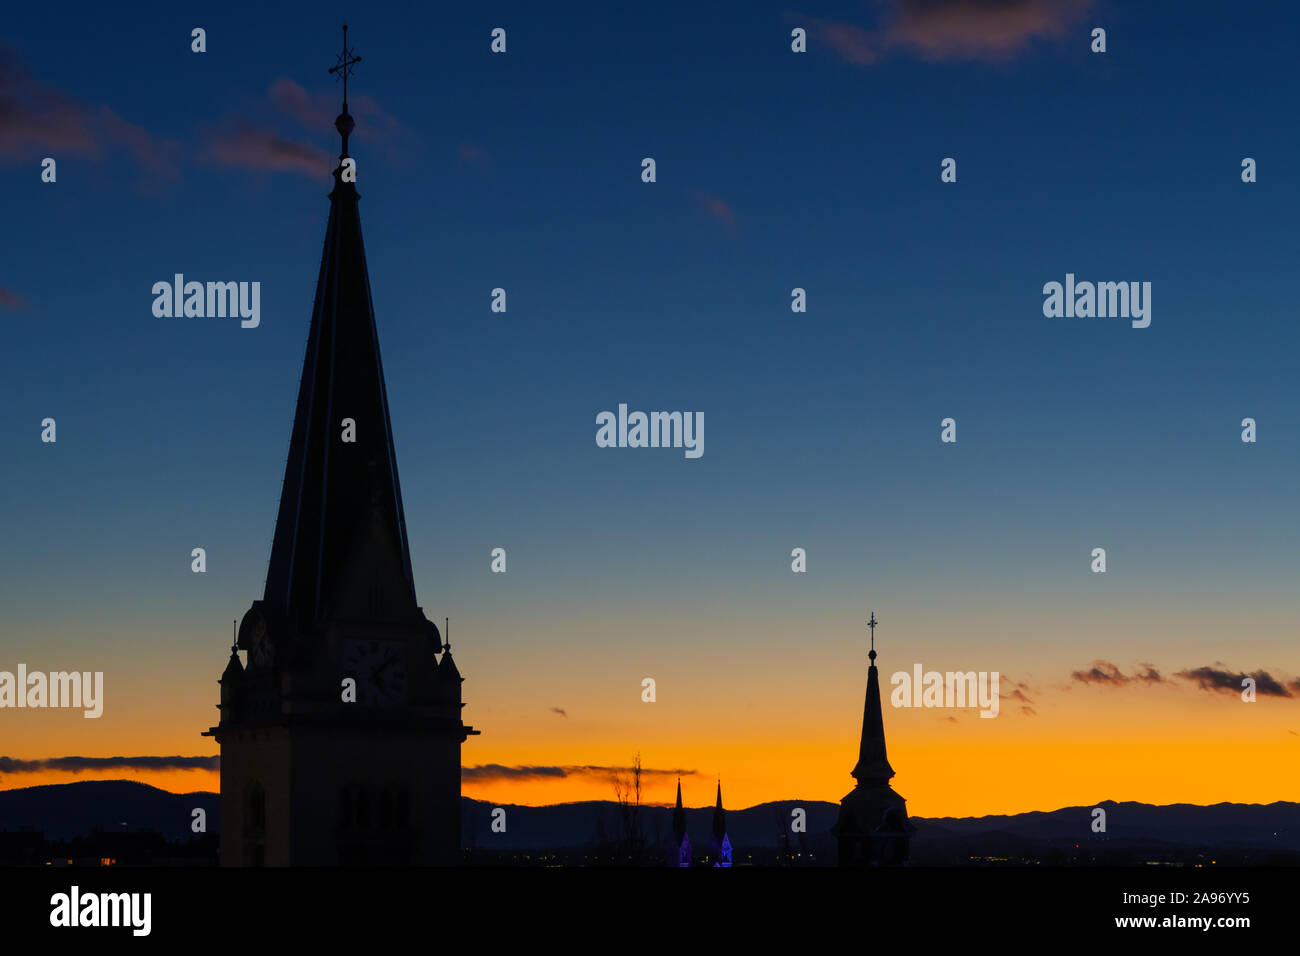 Cityscape silhouette of catholic church towers in Ljubljana on a wonderful orange blue evening sky background. Cityscapes and religion concepts. Stock Photo